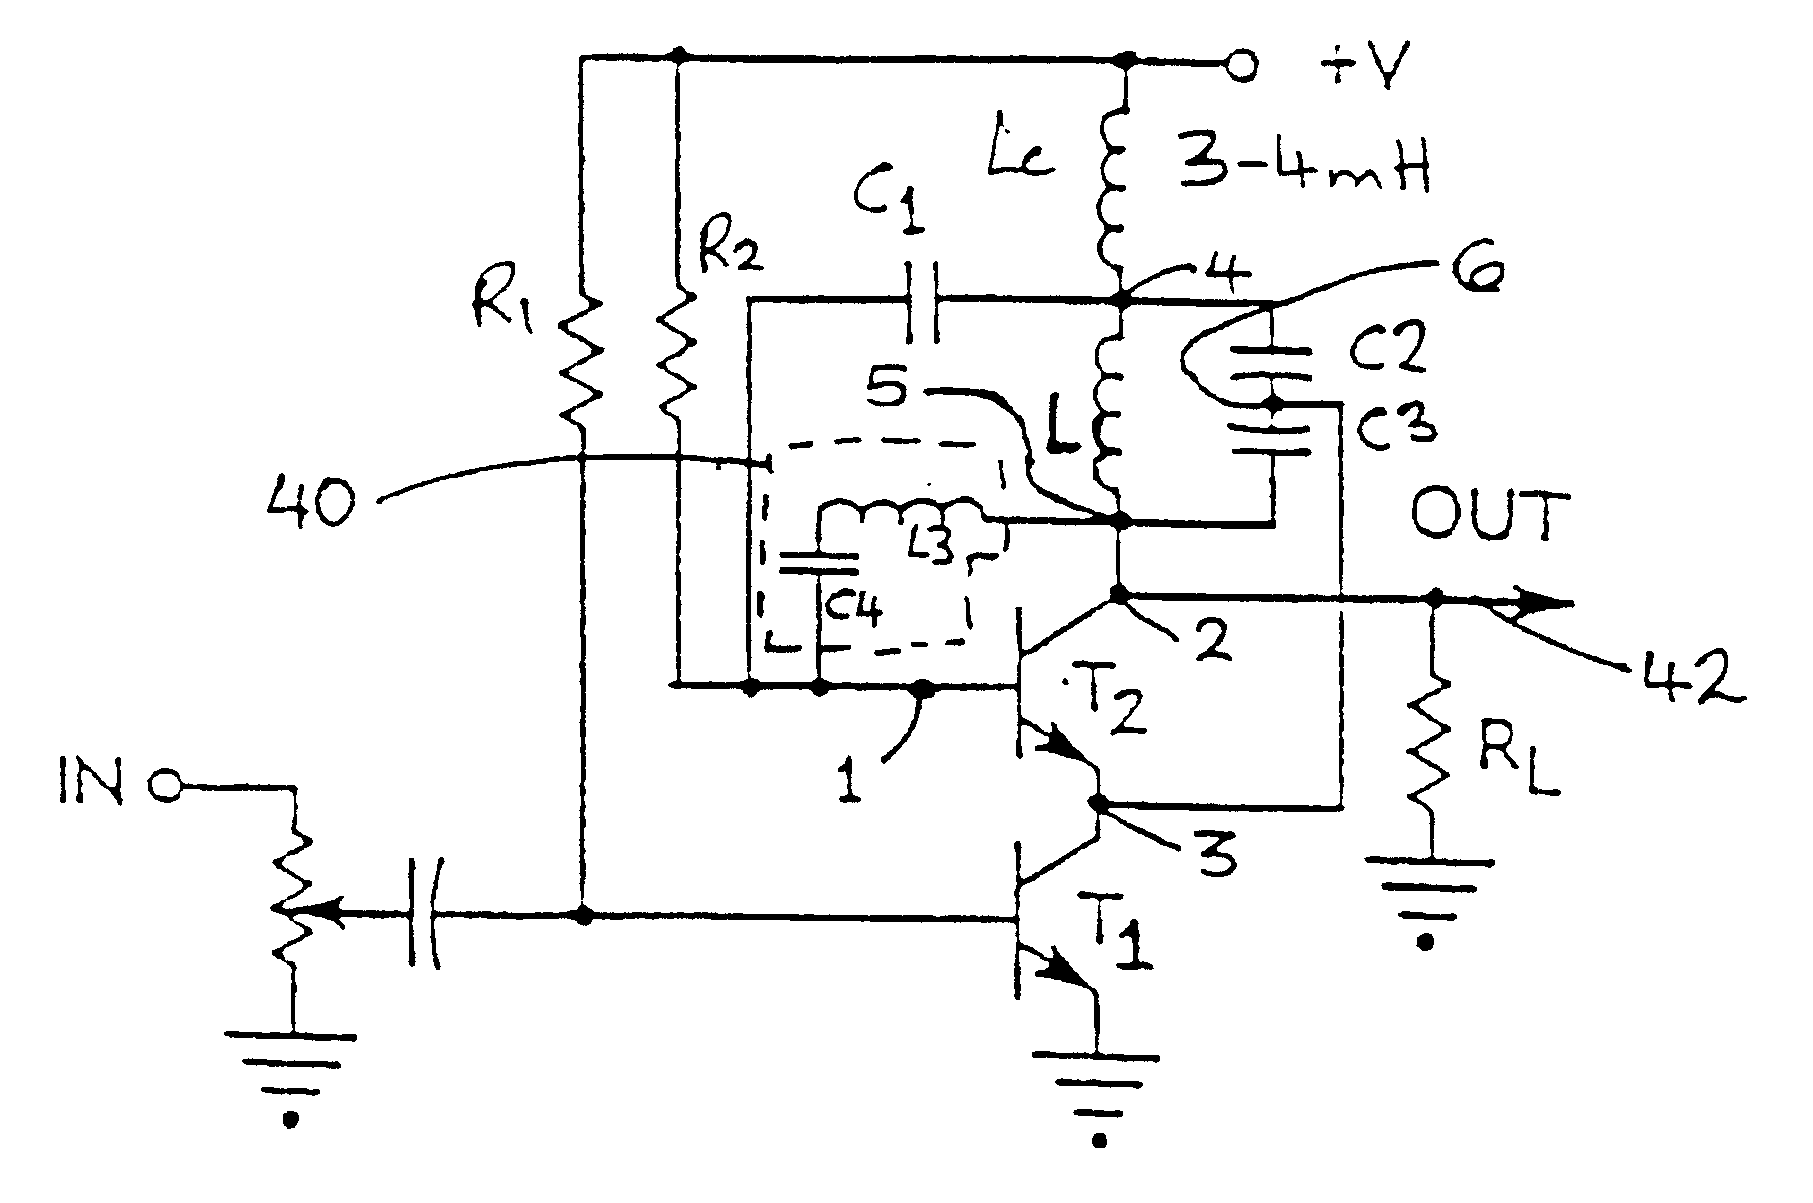 ytics for US Patent No. 6667666, Synchronous oscillators on transformer diagrams, honda motorcycle repair diagrams, smart car diagrams, led circuit diagrams, battery diagrams, sincgars radio configurations diagrams, hvac diagrams, series and parallel circuits diagrams, engine diagrams, gmc fuse box diagrams, lighting diagrams, troubleshooting diagrams, internet of things diagrams, electronic circuit diagrams, pinout diagrams, motor diagrams, electrical diagrams, switch diagrams, friendship bracelet diagrams,